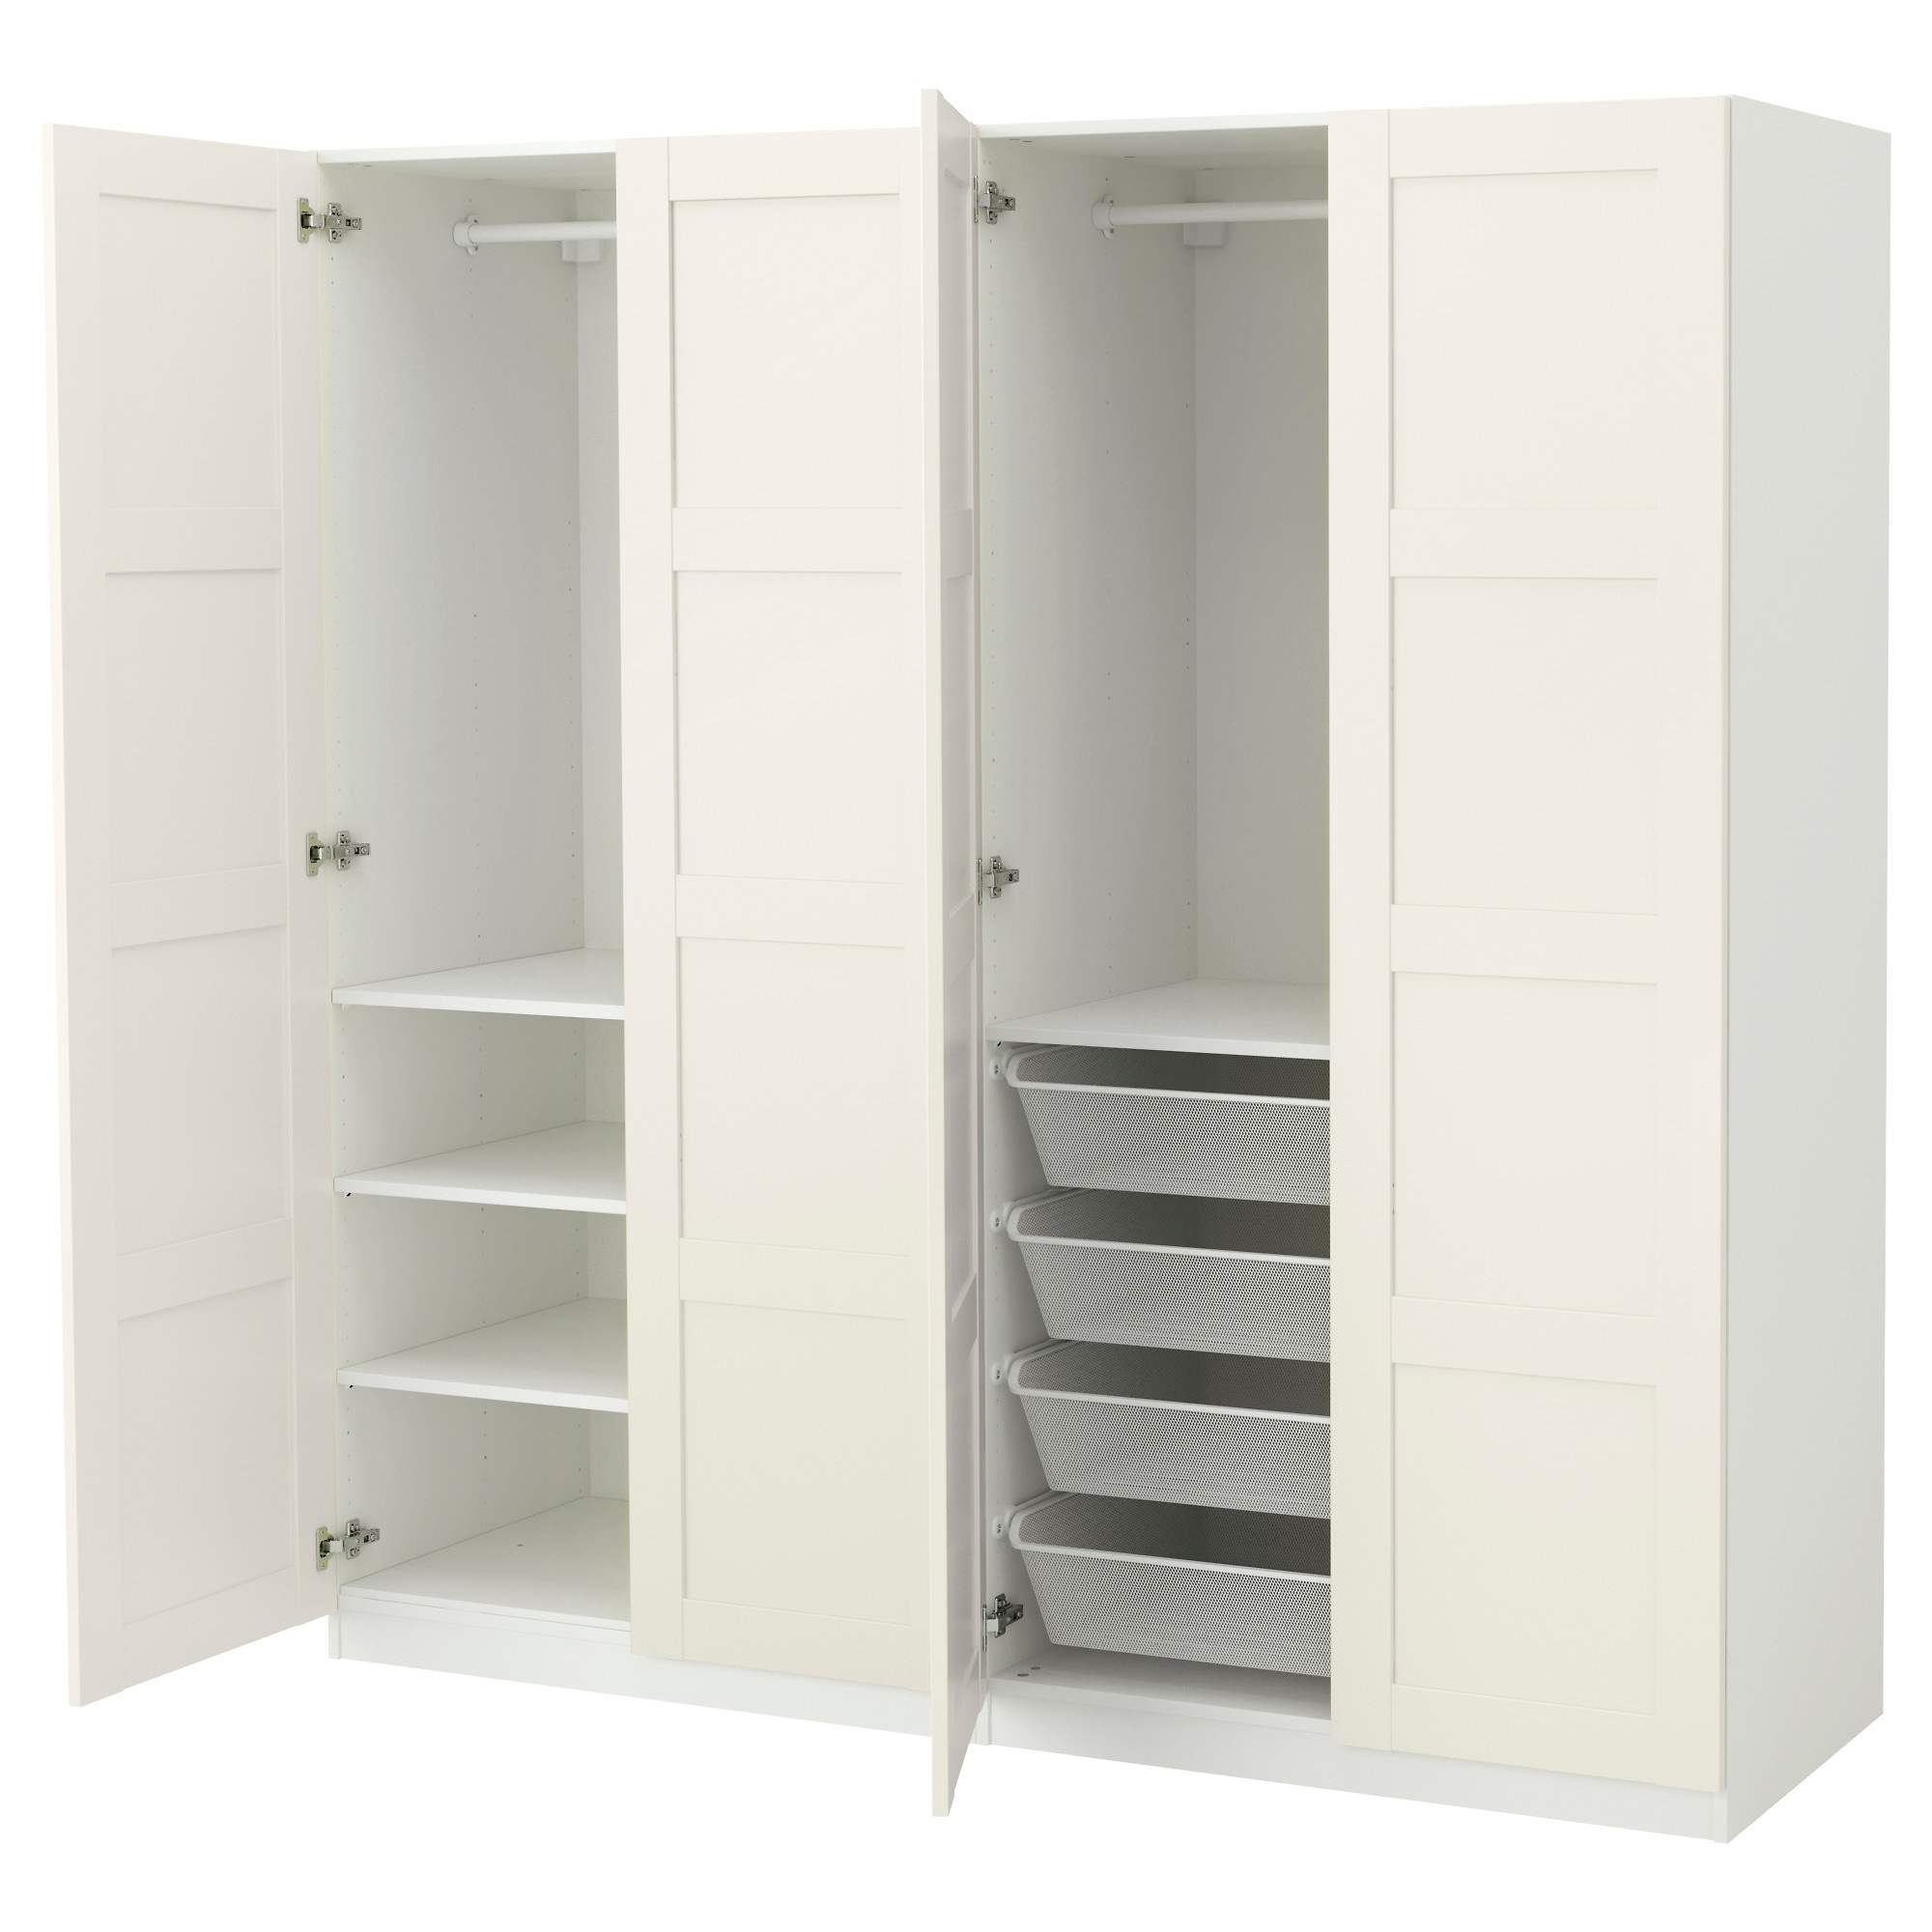 pin pinterest dressing pax wardrobe ikea room